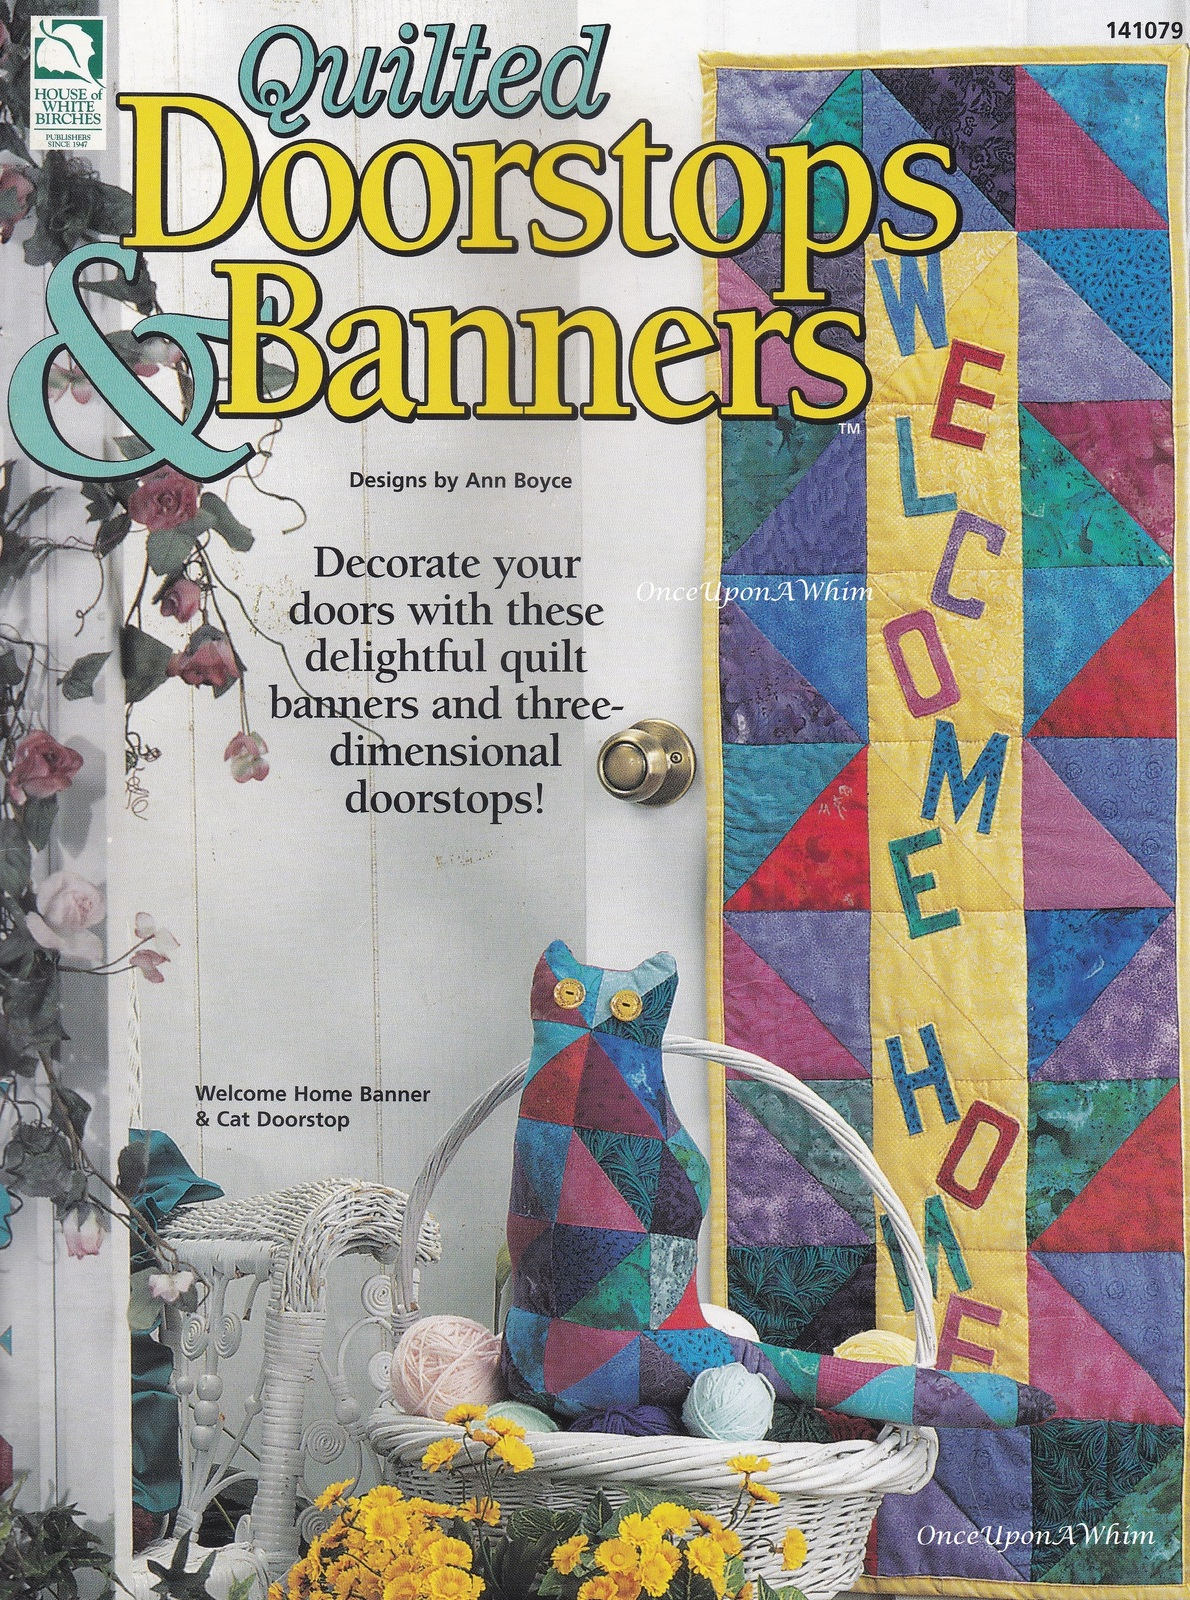 Primary image for Doorstops & Banners, House of White Birches Quilting Pattern Booklet 141079